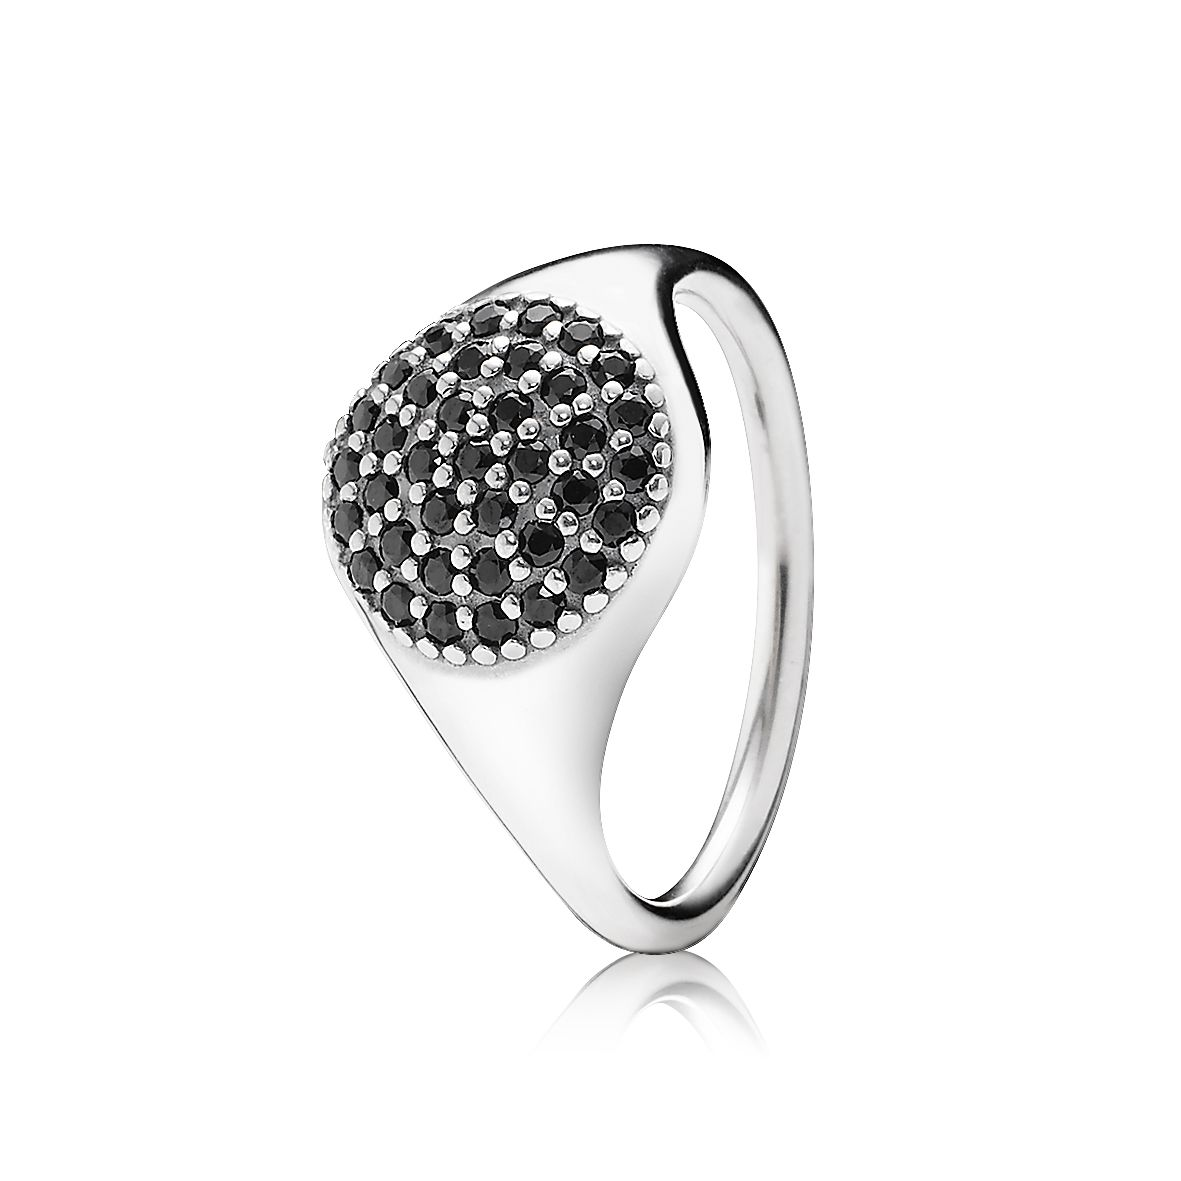 Pave silver ring with black crystal